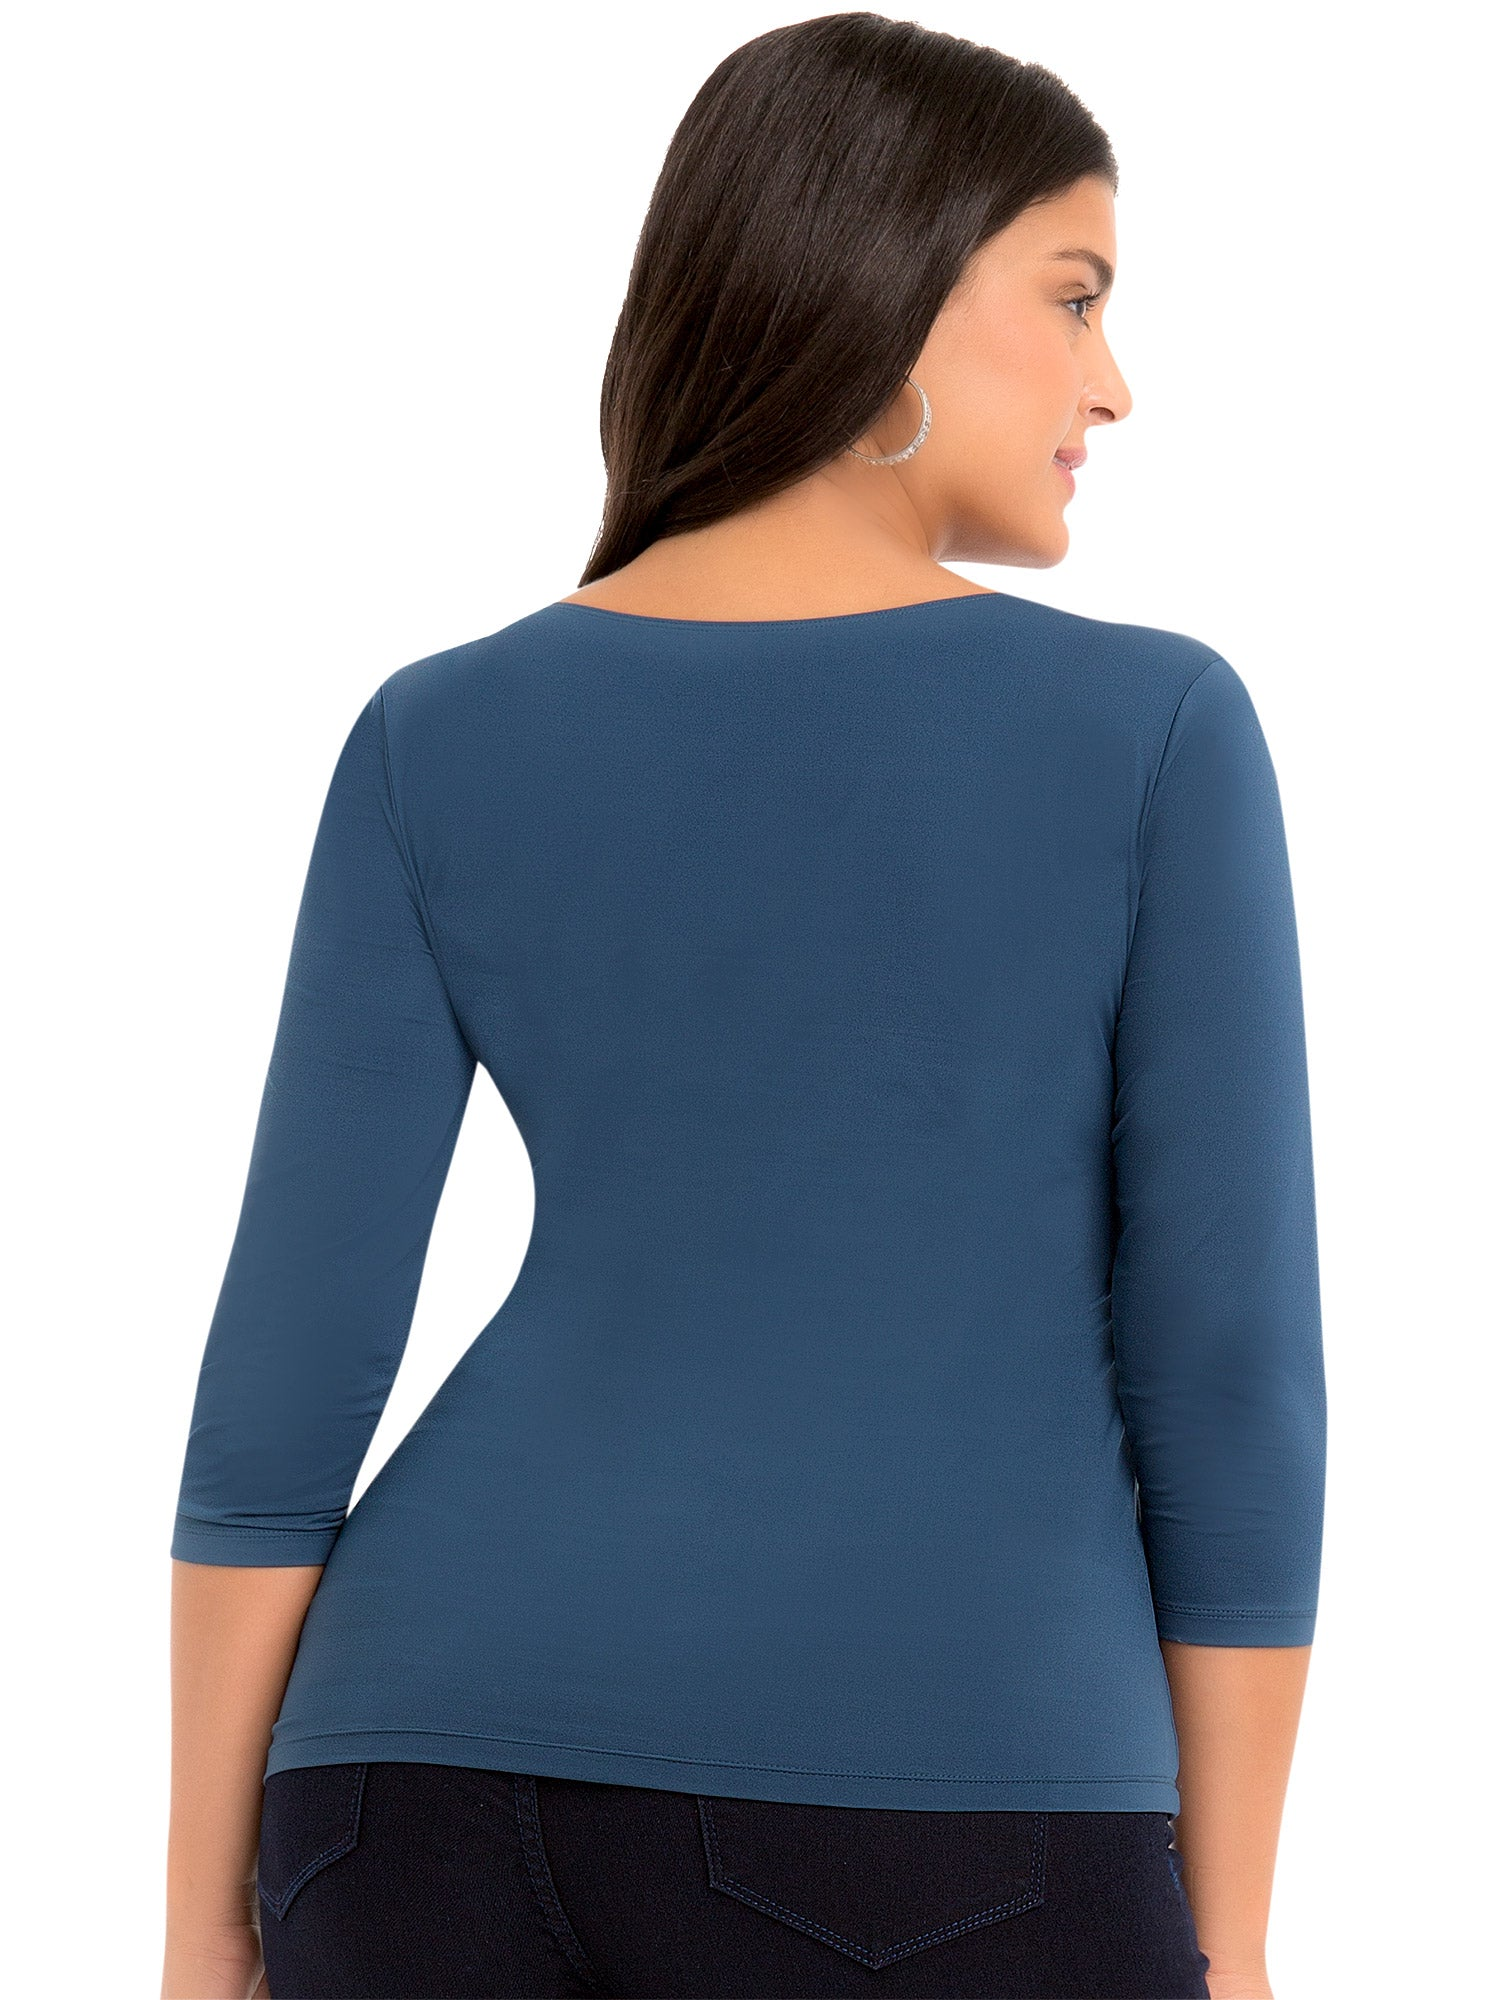 Super Smooth 3/4 Sleeve Top 4423